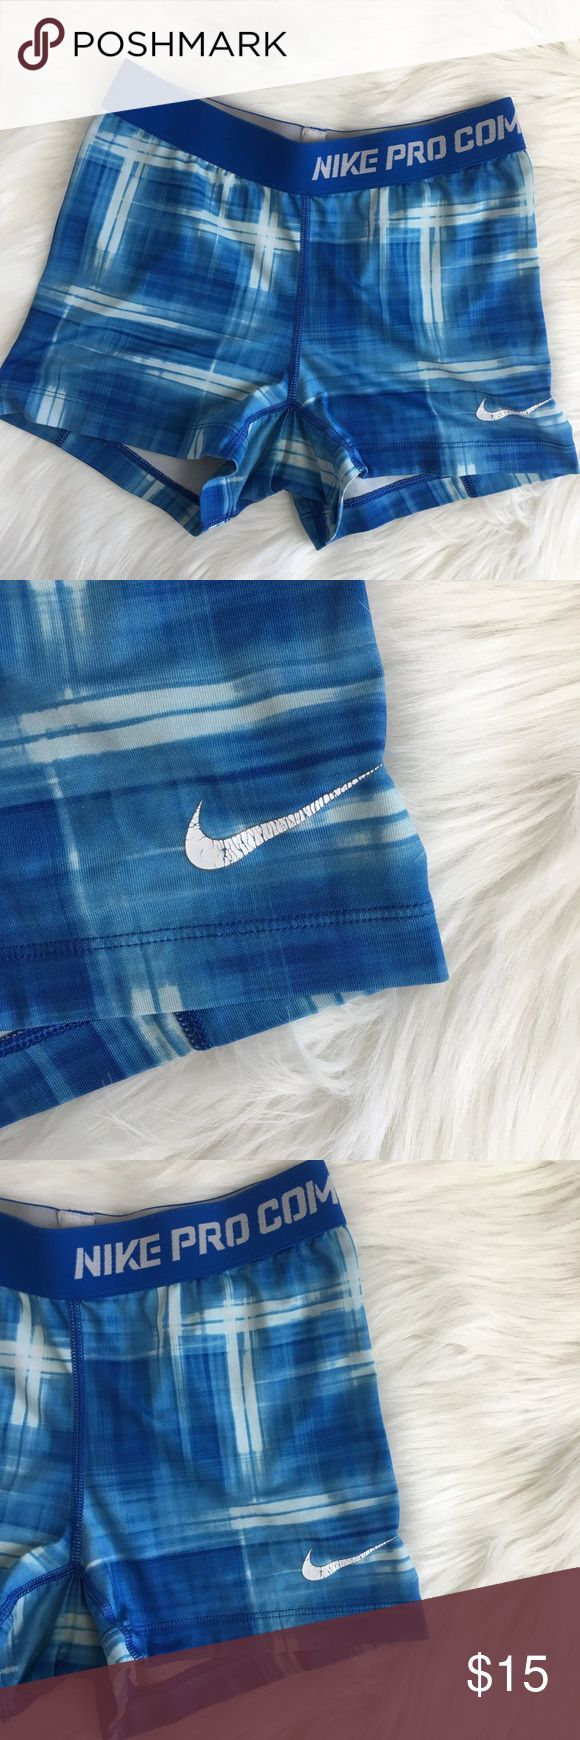 Nike Pro Combat Plaid Blue Spandex Nike pro spandex shorts. Great for sports. Worn but still have lots of life. Flaws shown in photos.  PET FREE HOME SMOKE FREE HOME OFFERS WELCOME QUICK SHIPPING CUTE PACKAGING 💕 ITEM #20 Nike Shorts